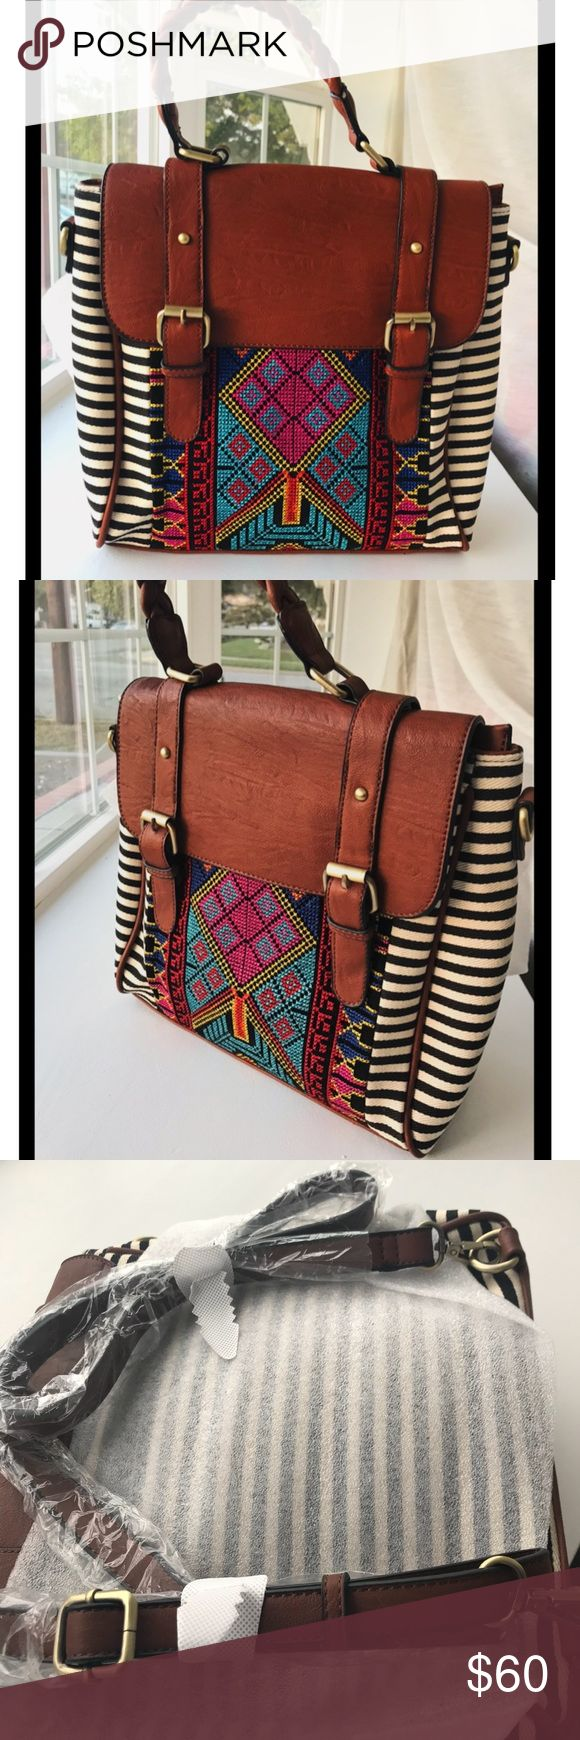 """Back in Stock! Satchel Bohemian Style ✨✨✨✨ Brand New. Convertible. Medium Size Satchel with Aztec inspired design.  Durable with canvas and faux leather.  Bohemian Satchel for everyday use.  Convertible Satchel -can be used as a backpack as well.   12"""" W x 6"""" D x 11.5"""" H ✨✨✨✨✨✨✨ High Quality! MMS Design Studio Bags Satchels"""